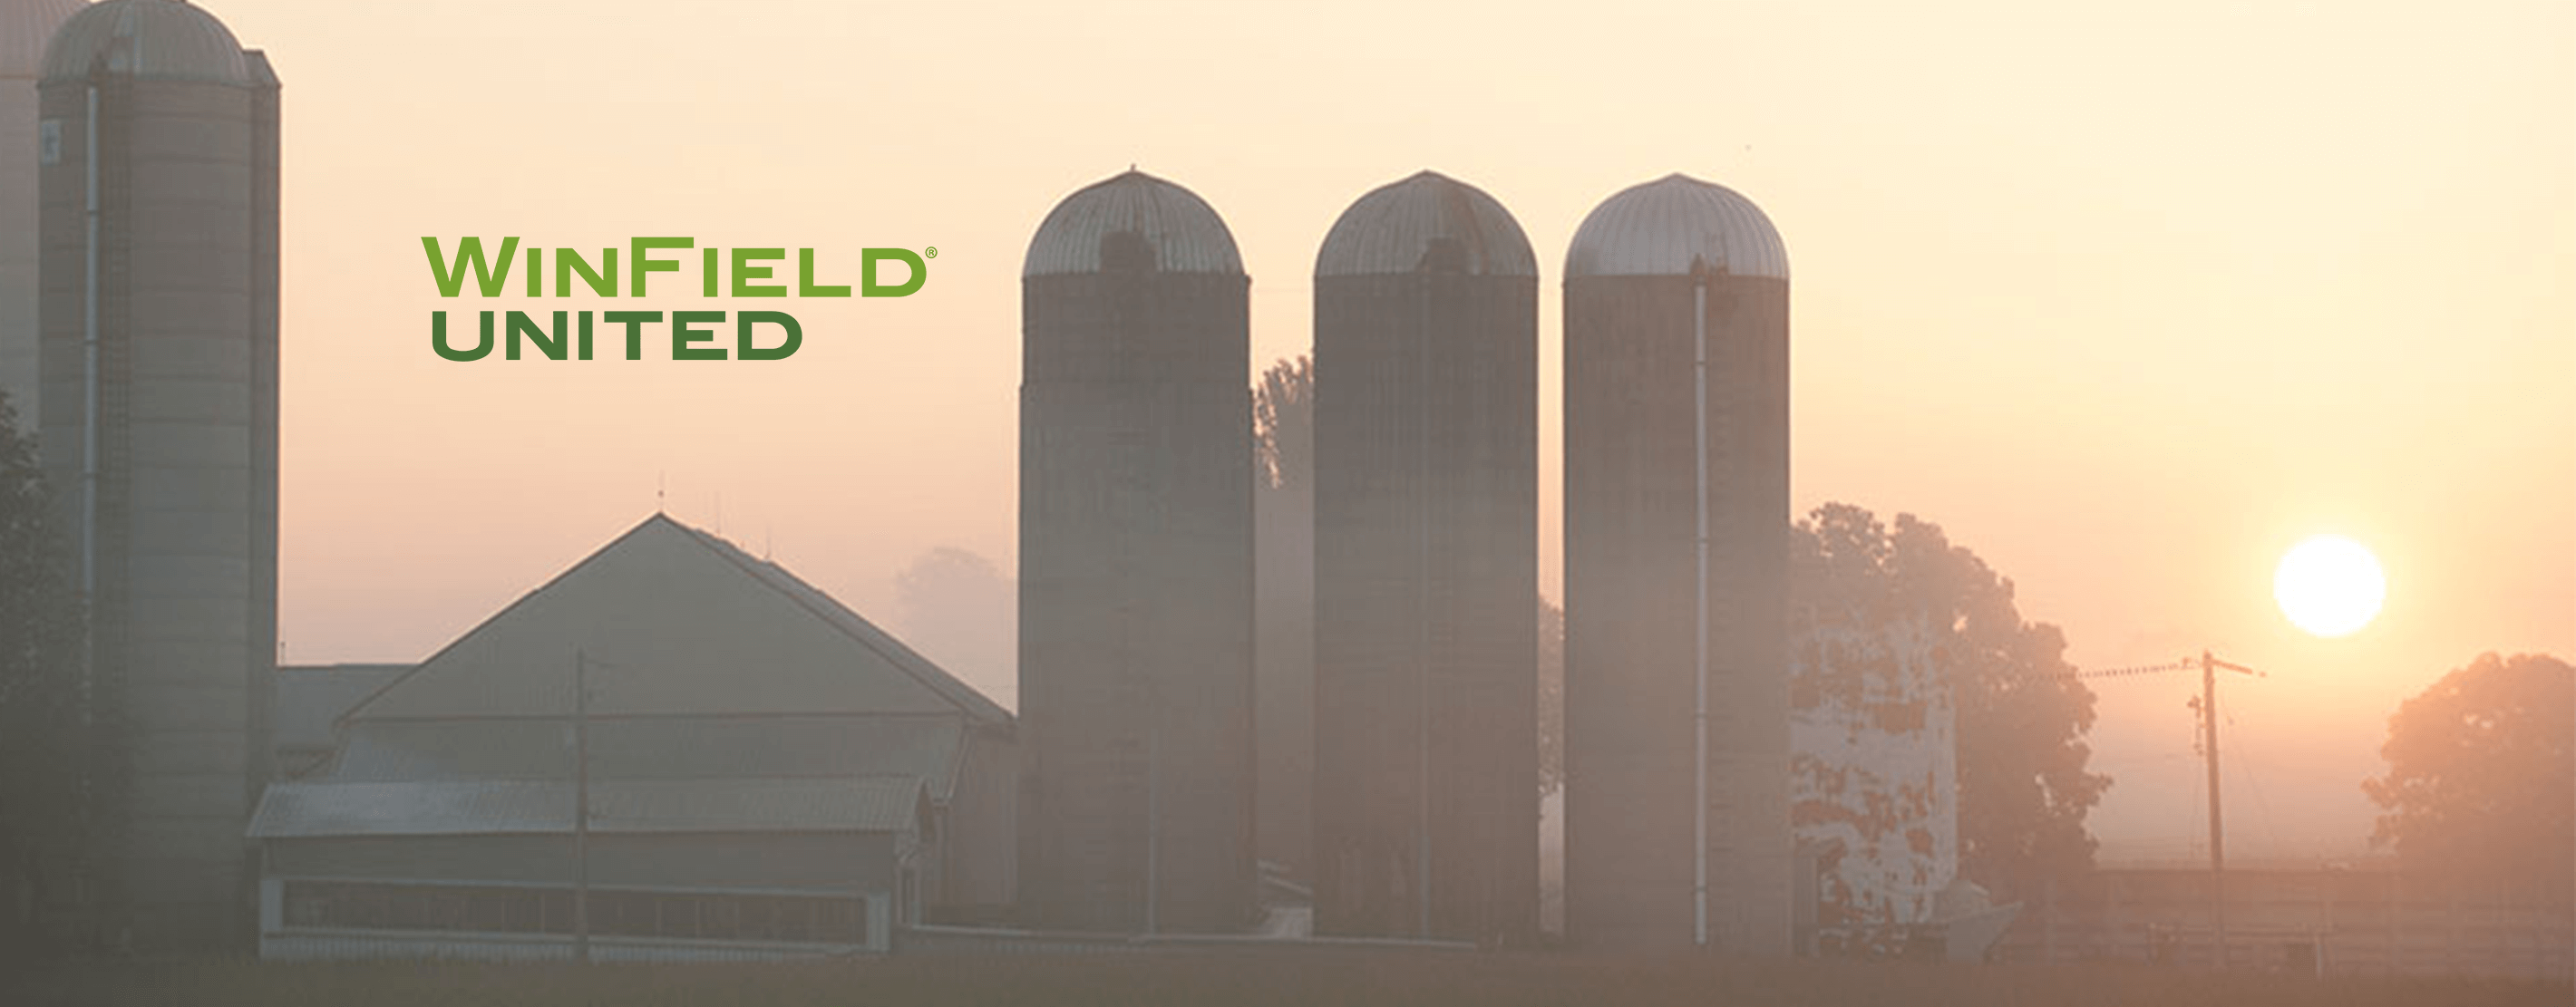 WinField United Logo Over A Farm At Sunrise